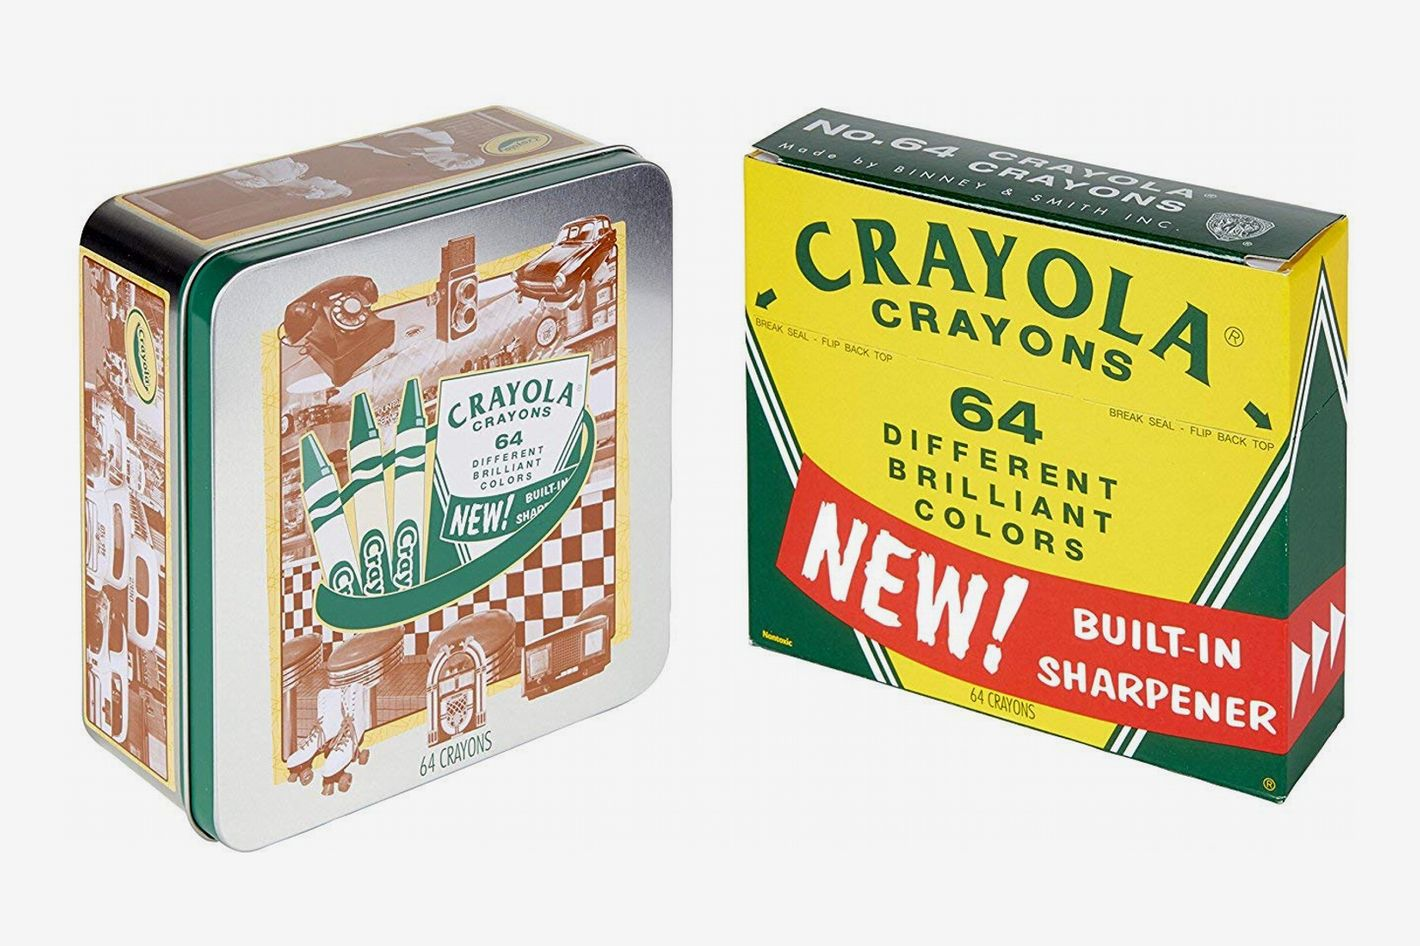 Crayola 60th-Anniversary 64-Count Crayon Set With Collectible Tin